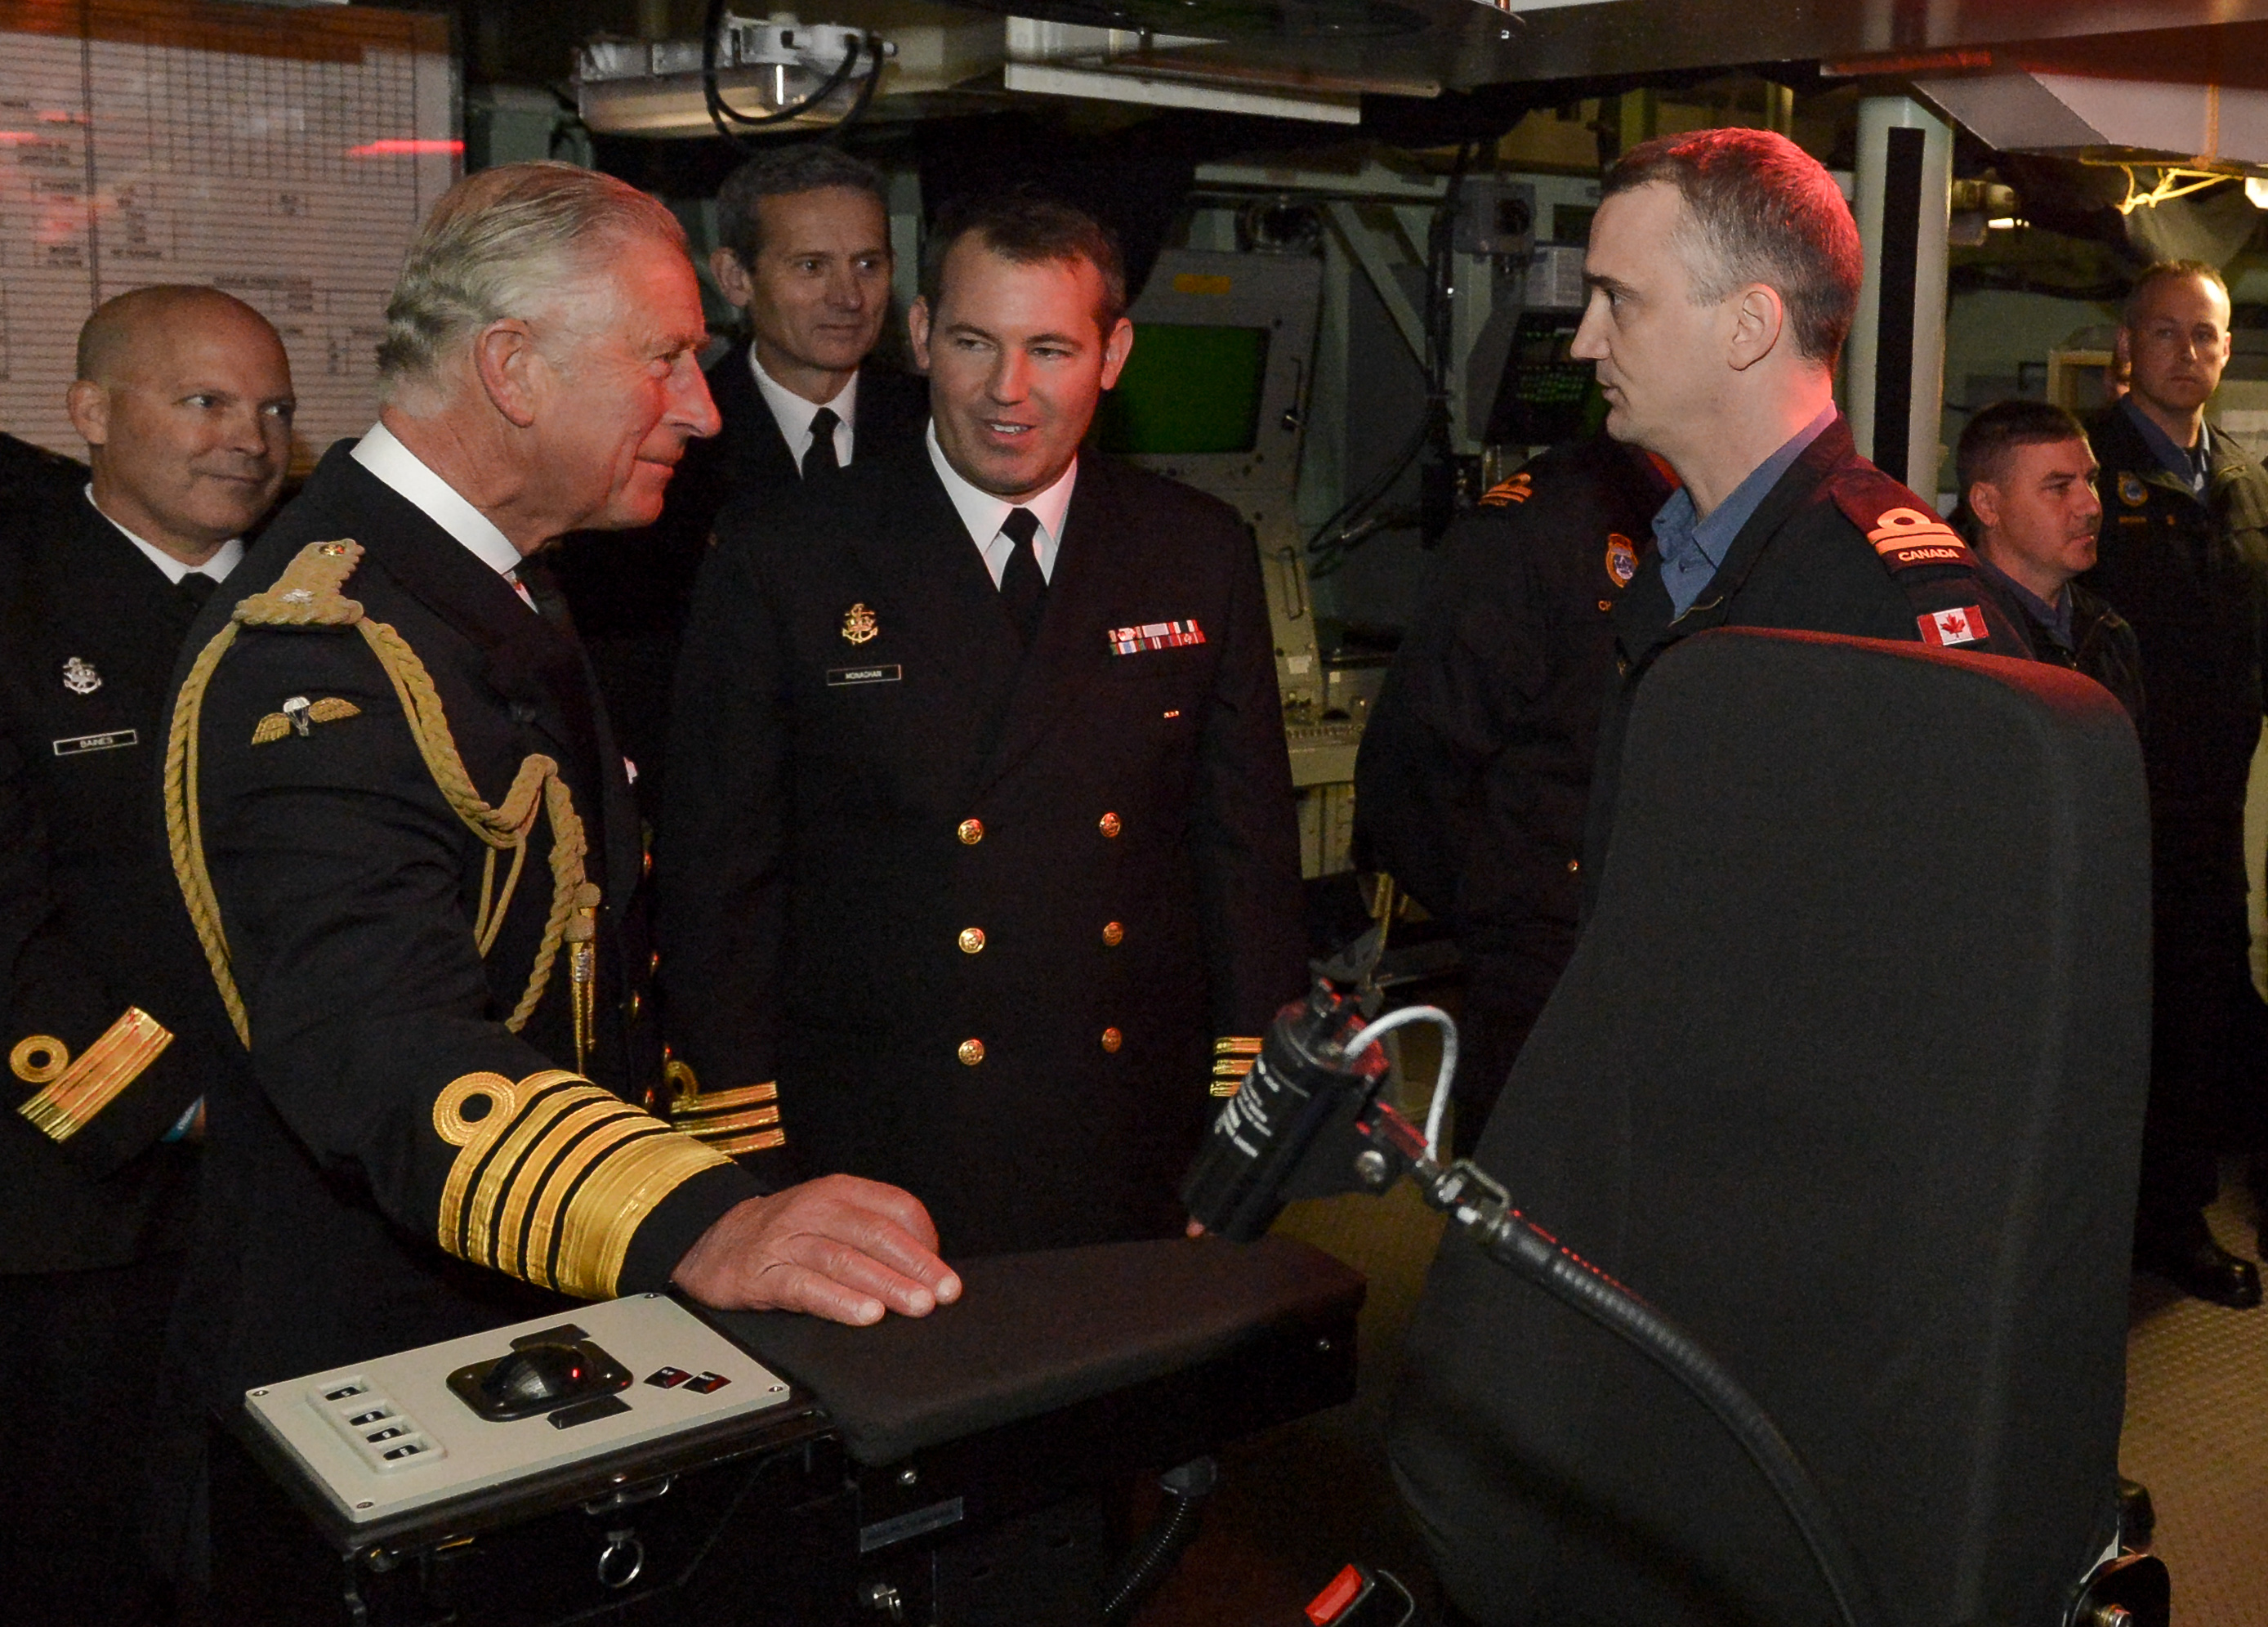 His Royal Highness Prince Charles and Commander Kristjan Monaghan